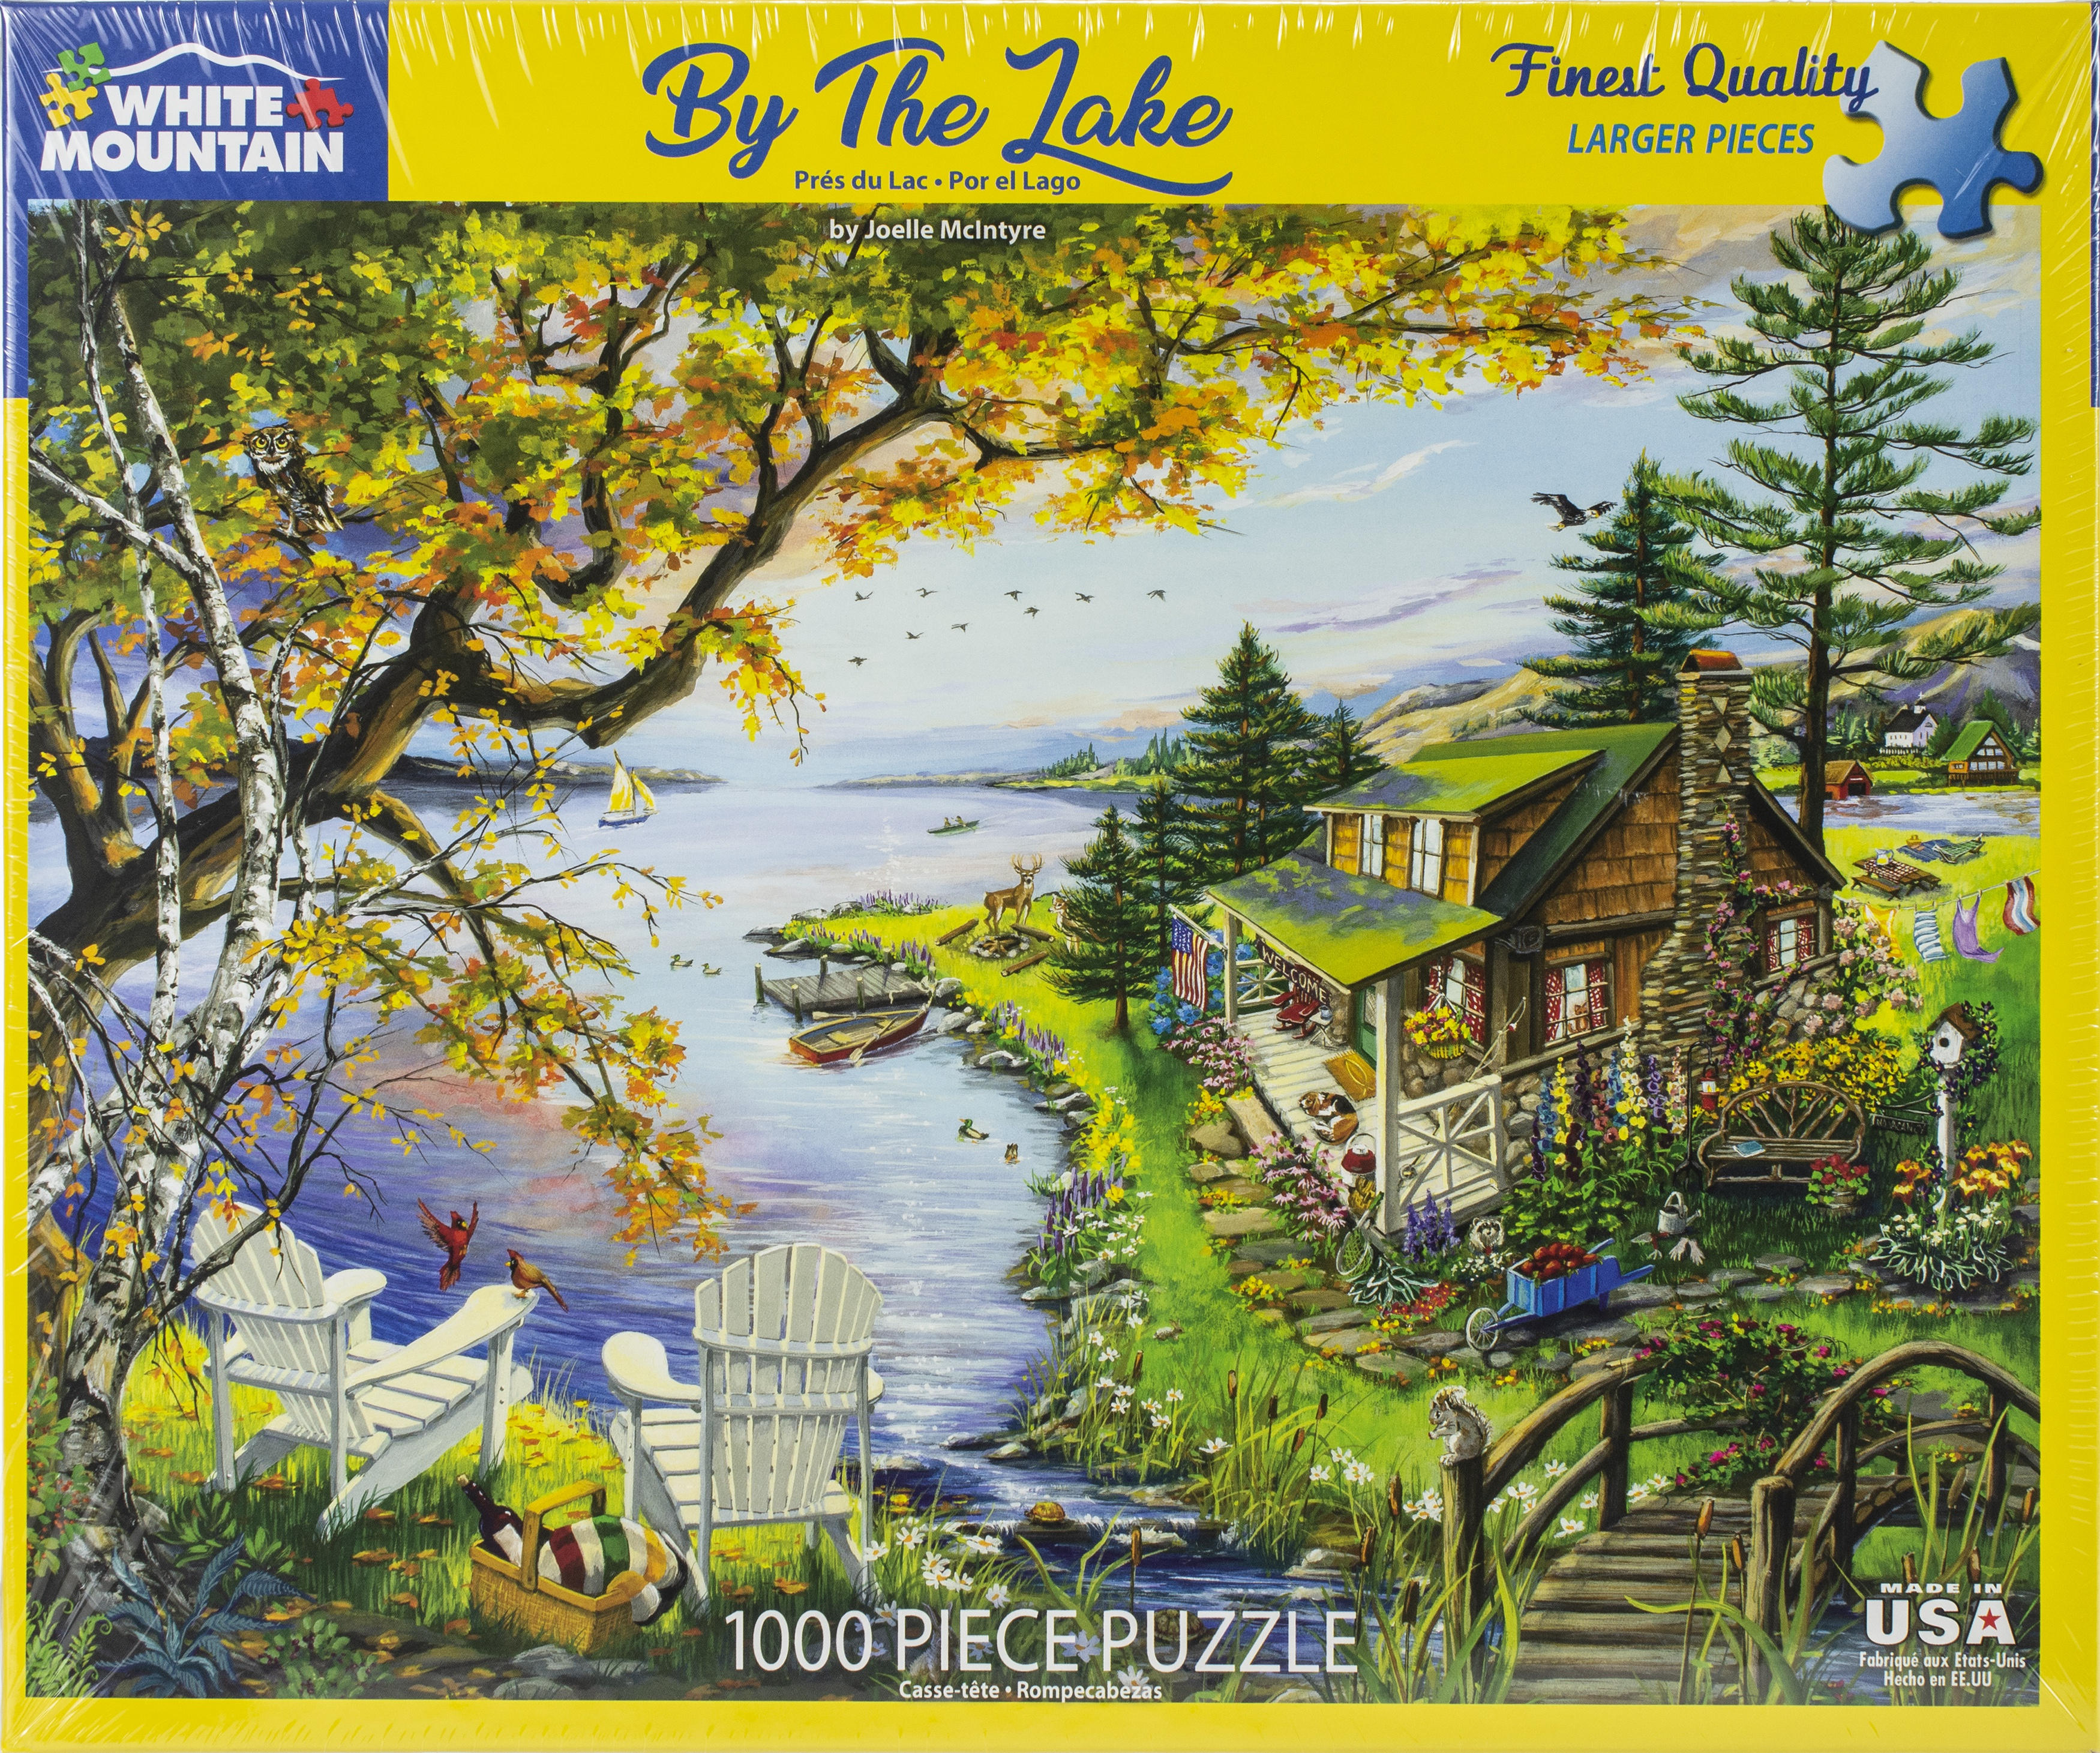 Jigsaw Puzzle 1000 Pieces 24x30-By The Lake